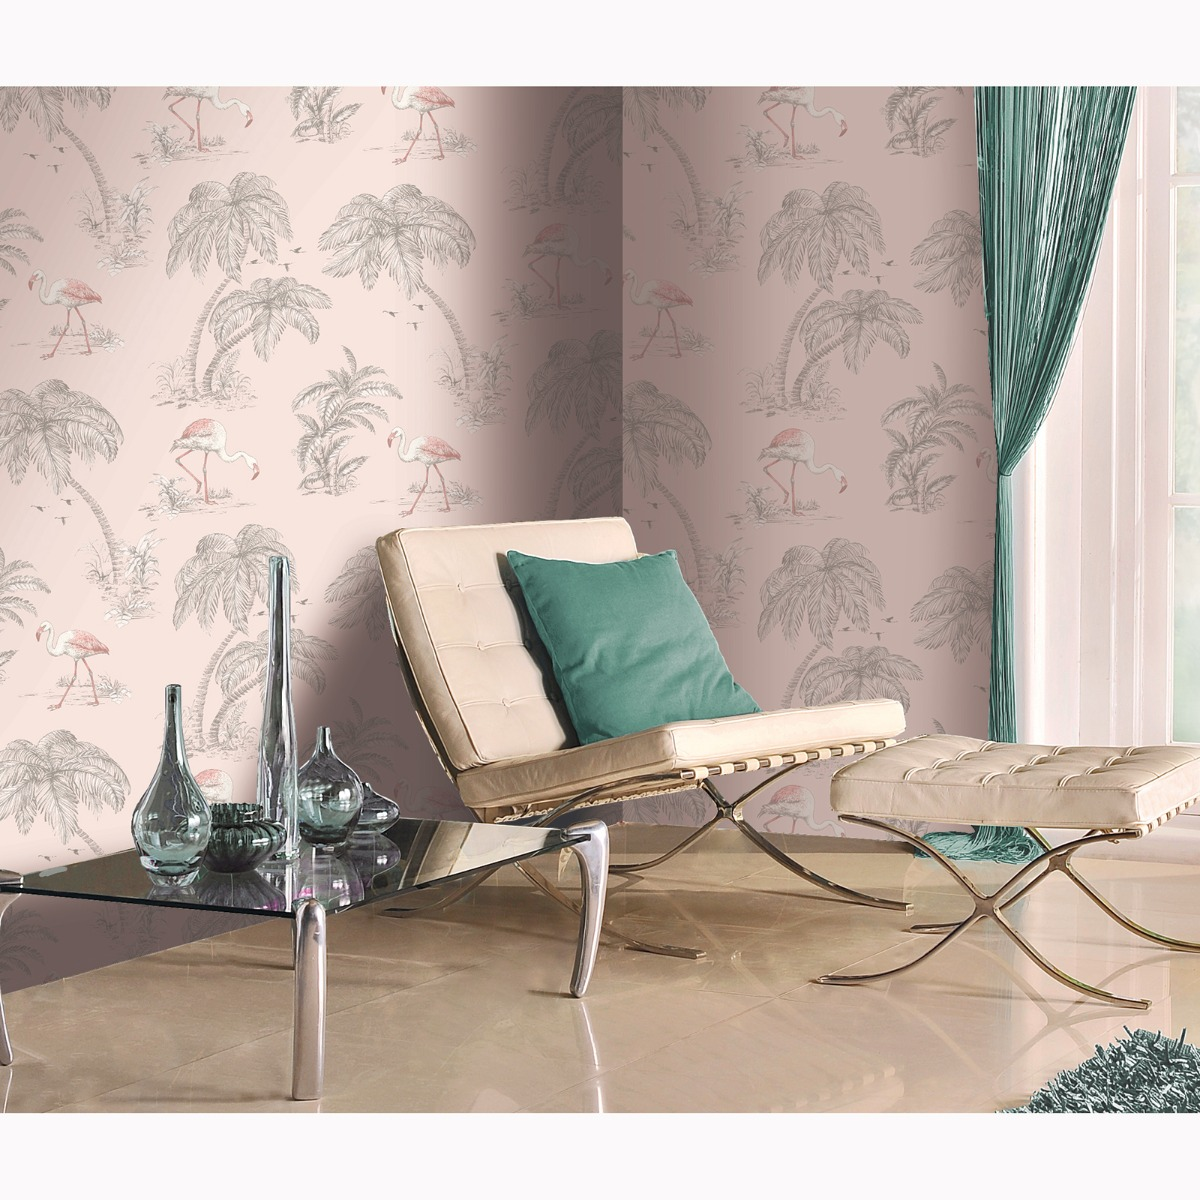 Flamingo Lake Wallpaper Blush Pink World of Wallpaper 50155